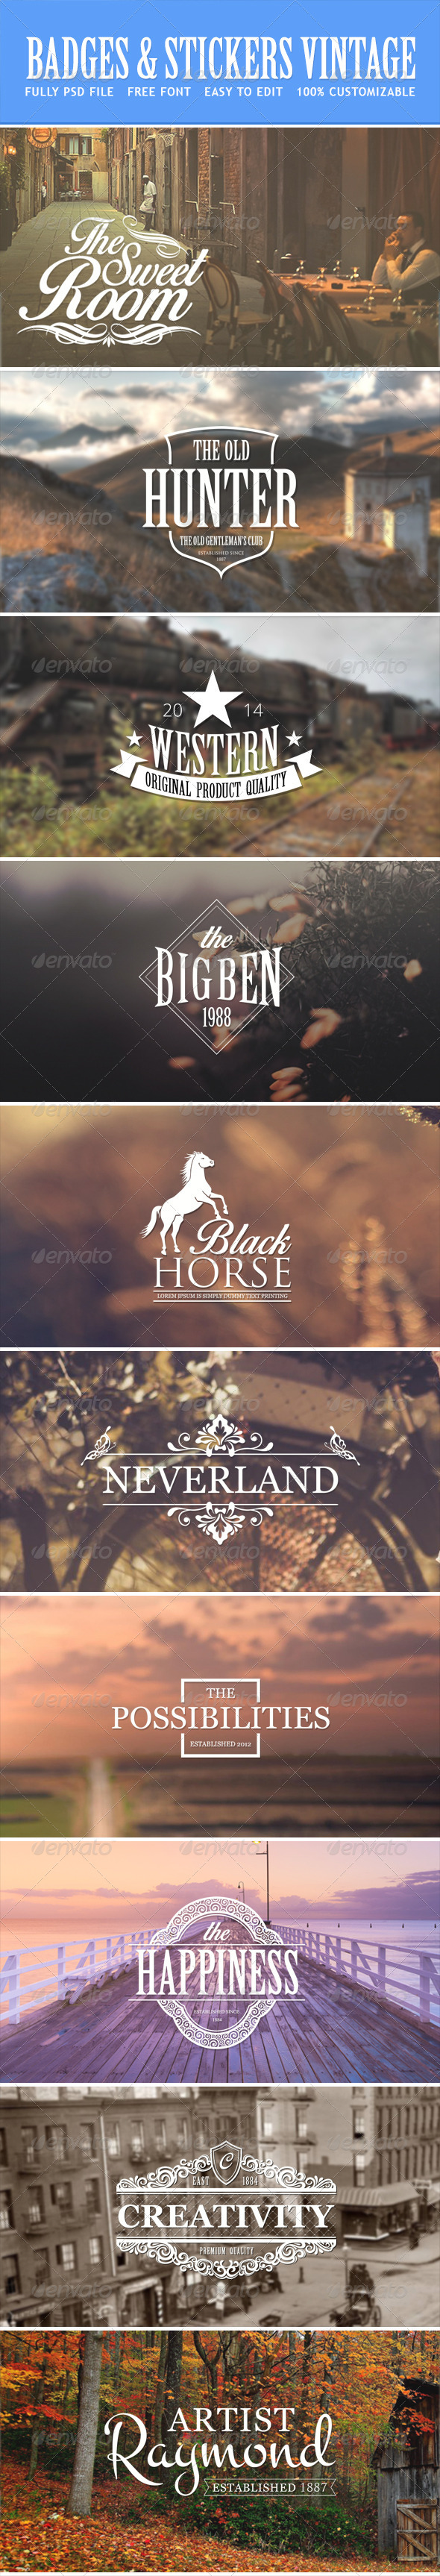 GraphicRiver Badges Stickers Vintage 7828480